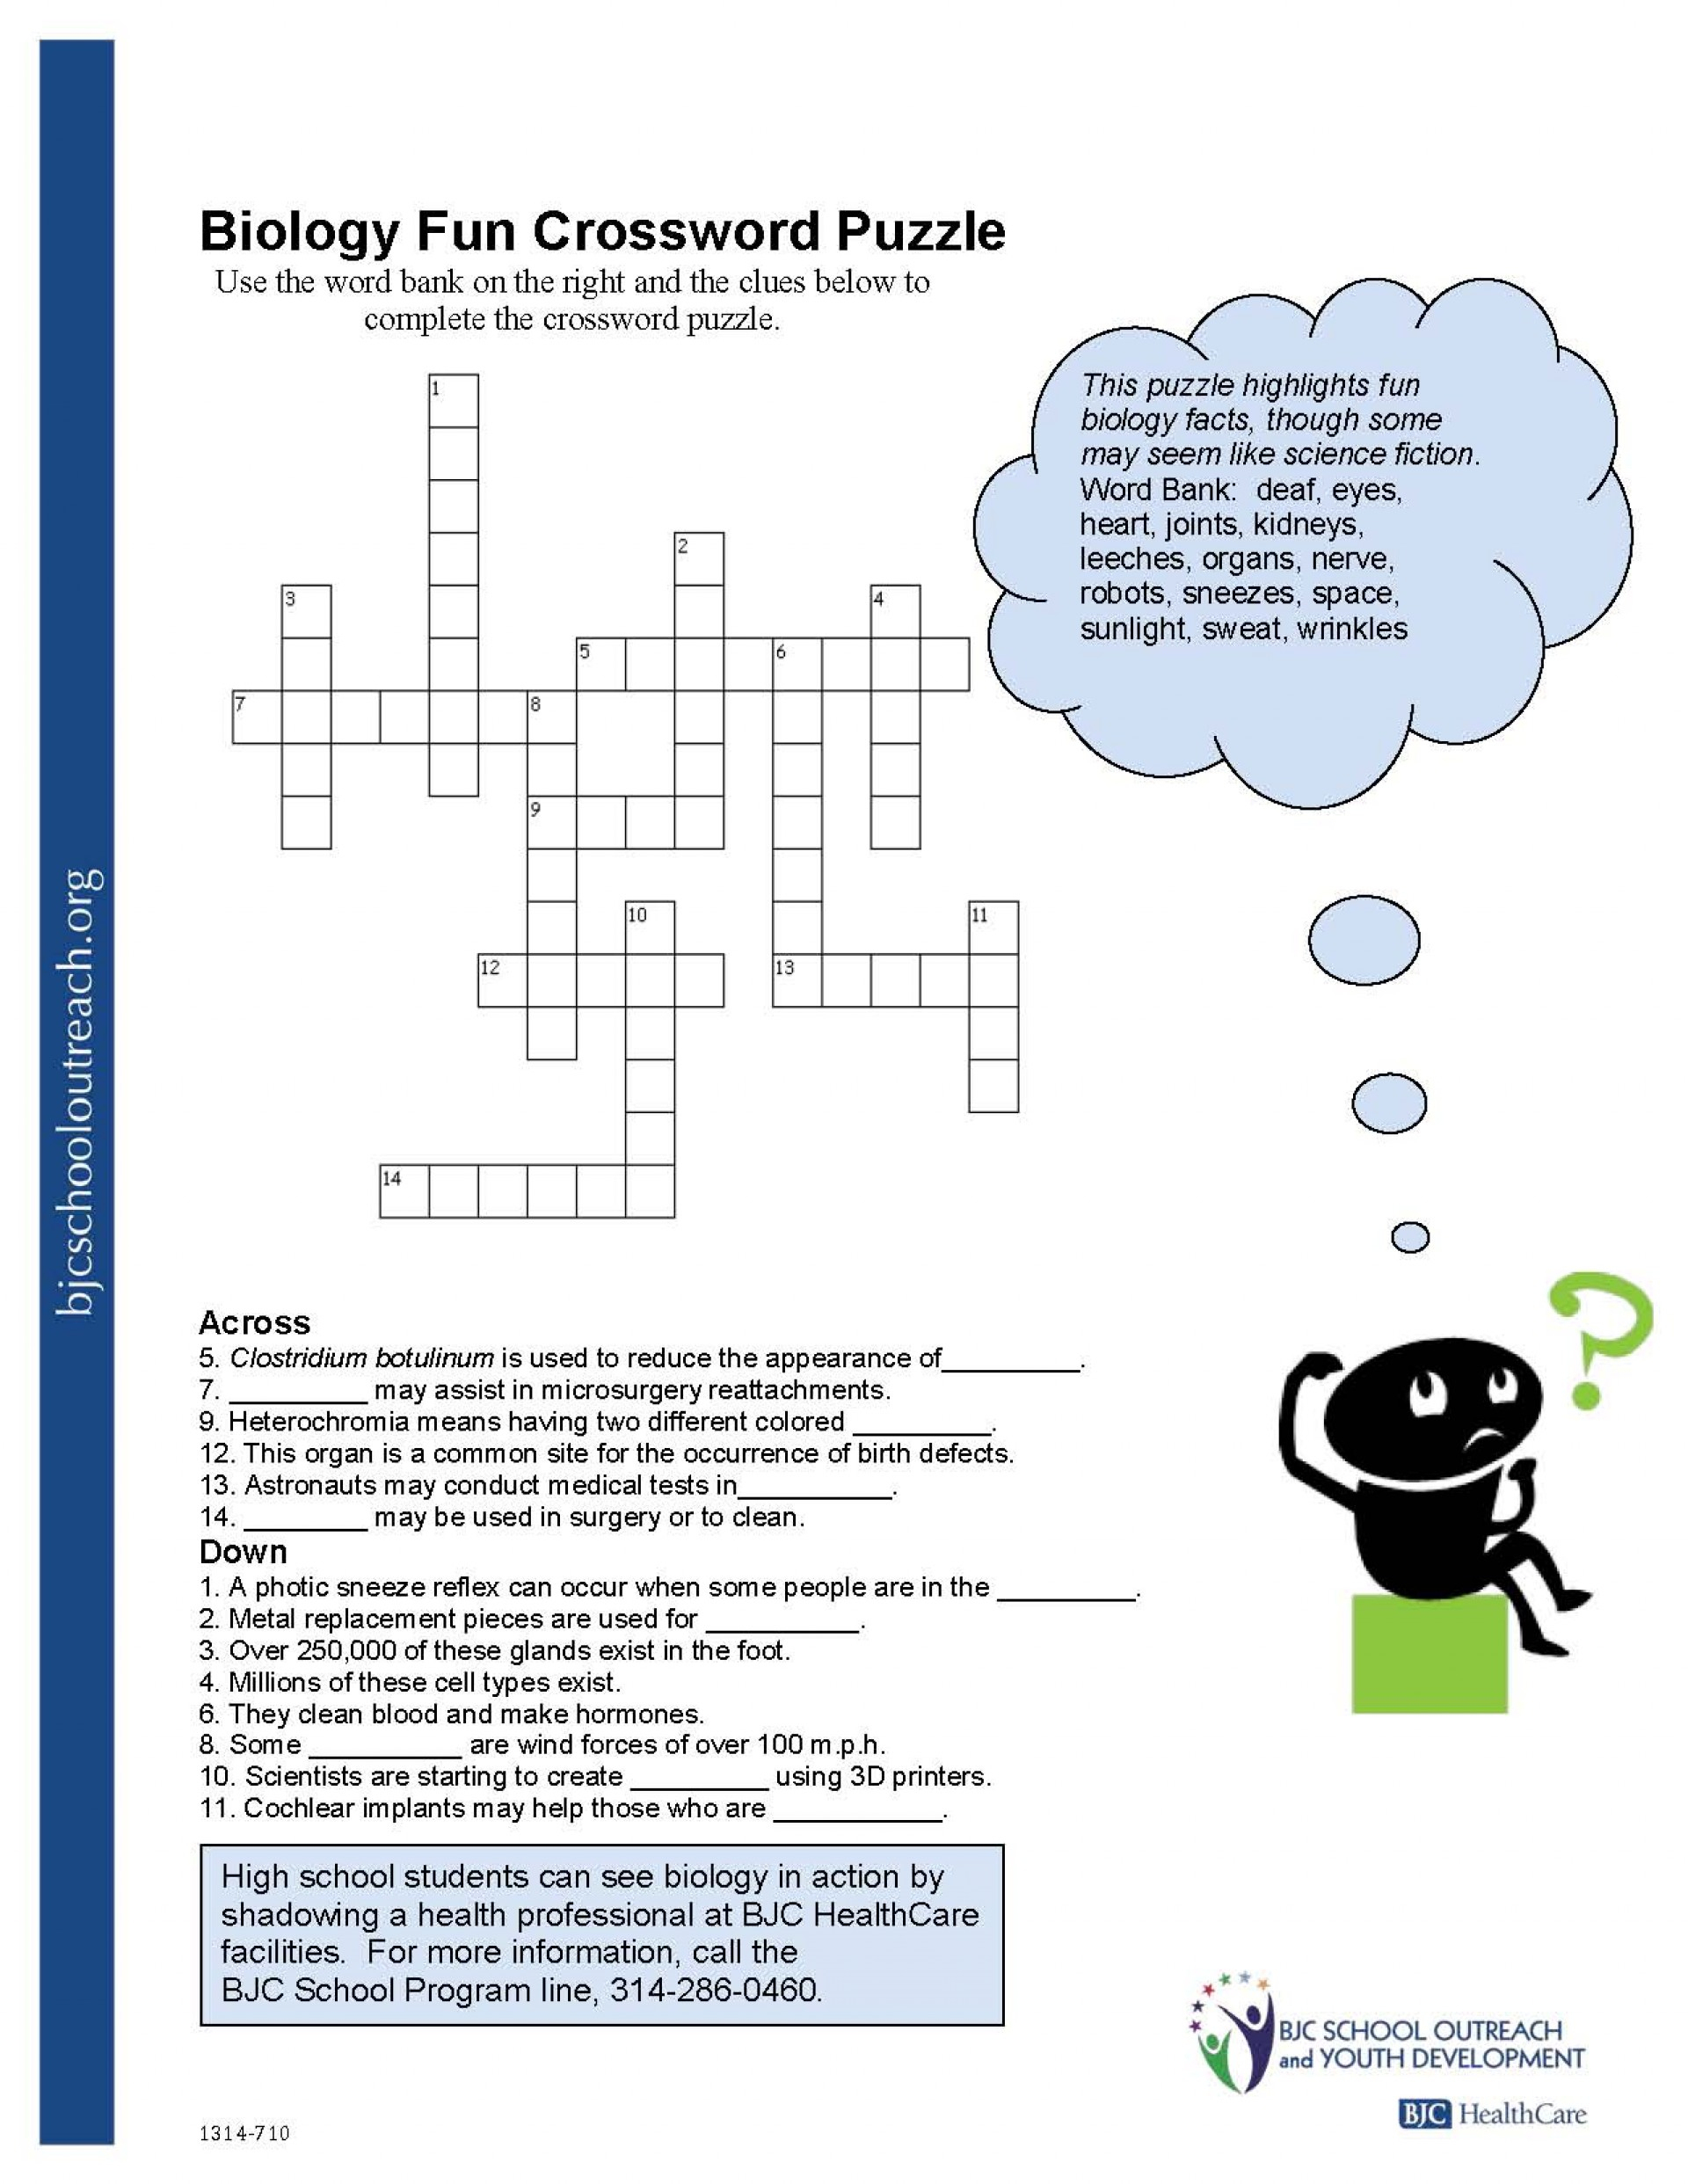 Crosswords Crossword Puzzle Worksheets For Middle School Biology Fun | Free Printable Biology Worksheets For High School